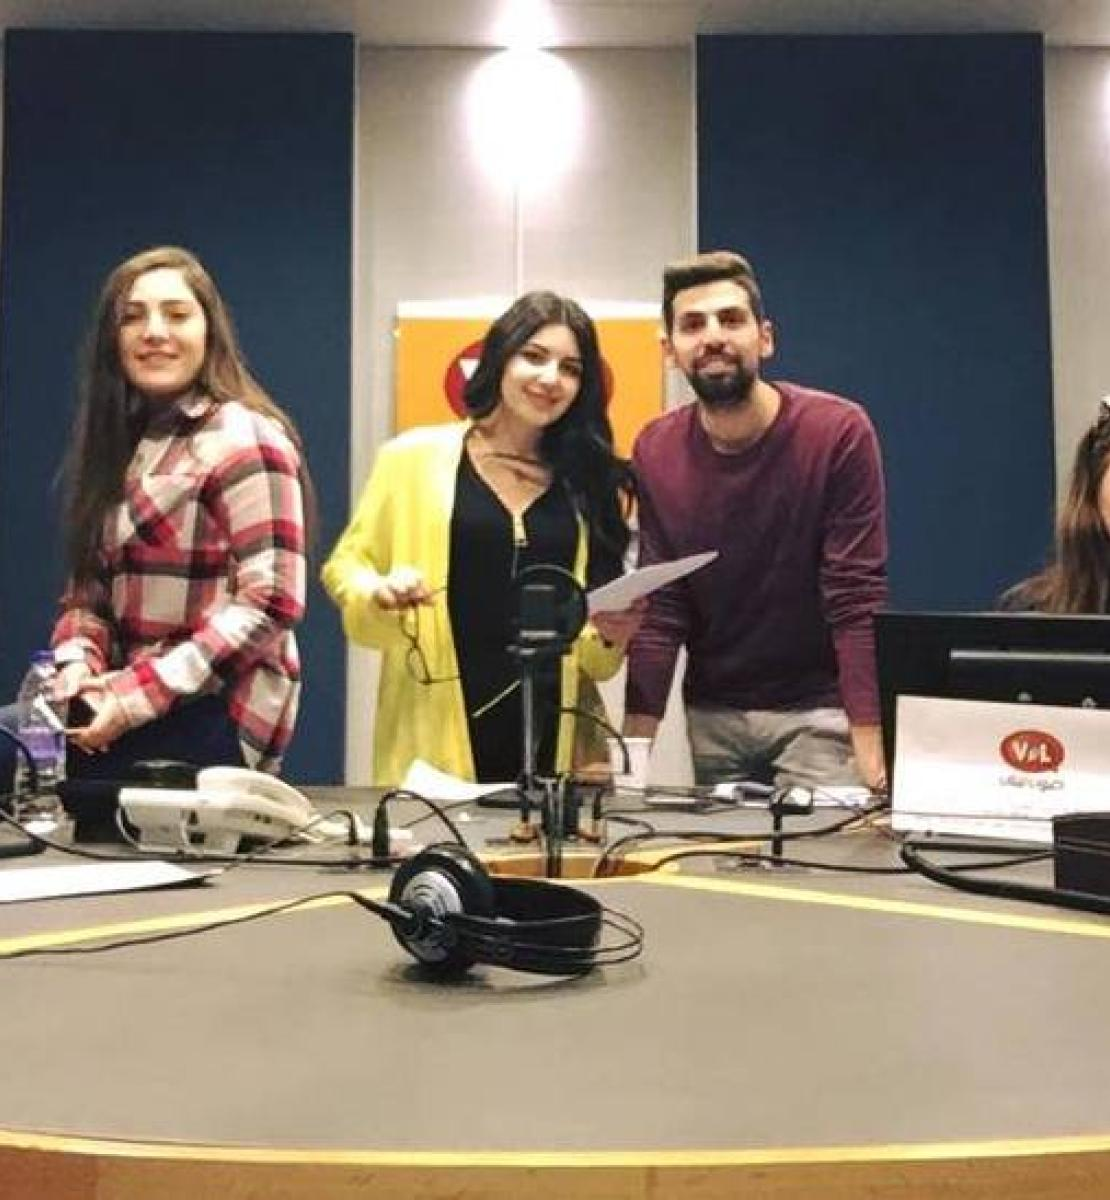 From radio to theatre, bringing the voices of youth to centre stage in Lebanon